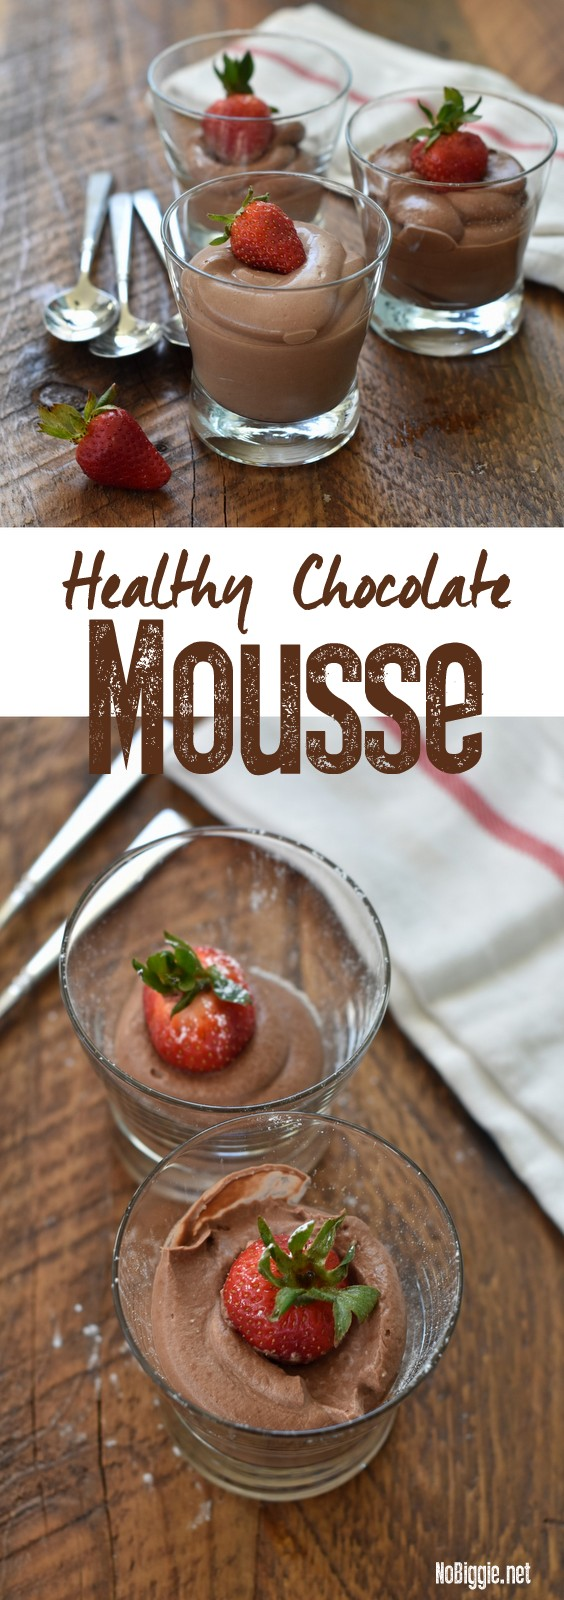 Healthy Chocolate Mousse - Just three ingredients is all you need to make this heavenly and healthy chocolate mousse. #chocolatemousse #healthychocolatemousse #chocolate #healthydesserts